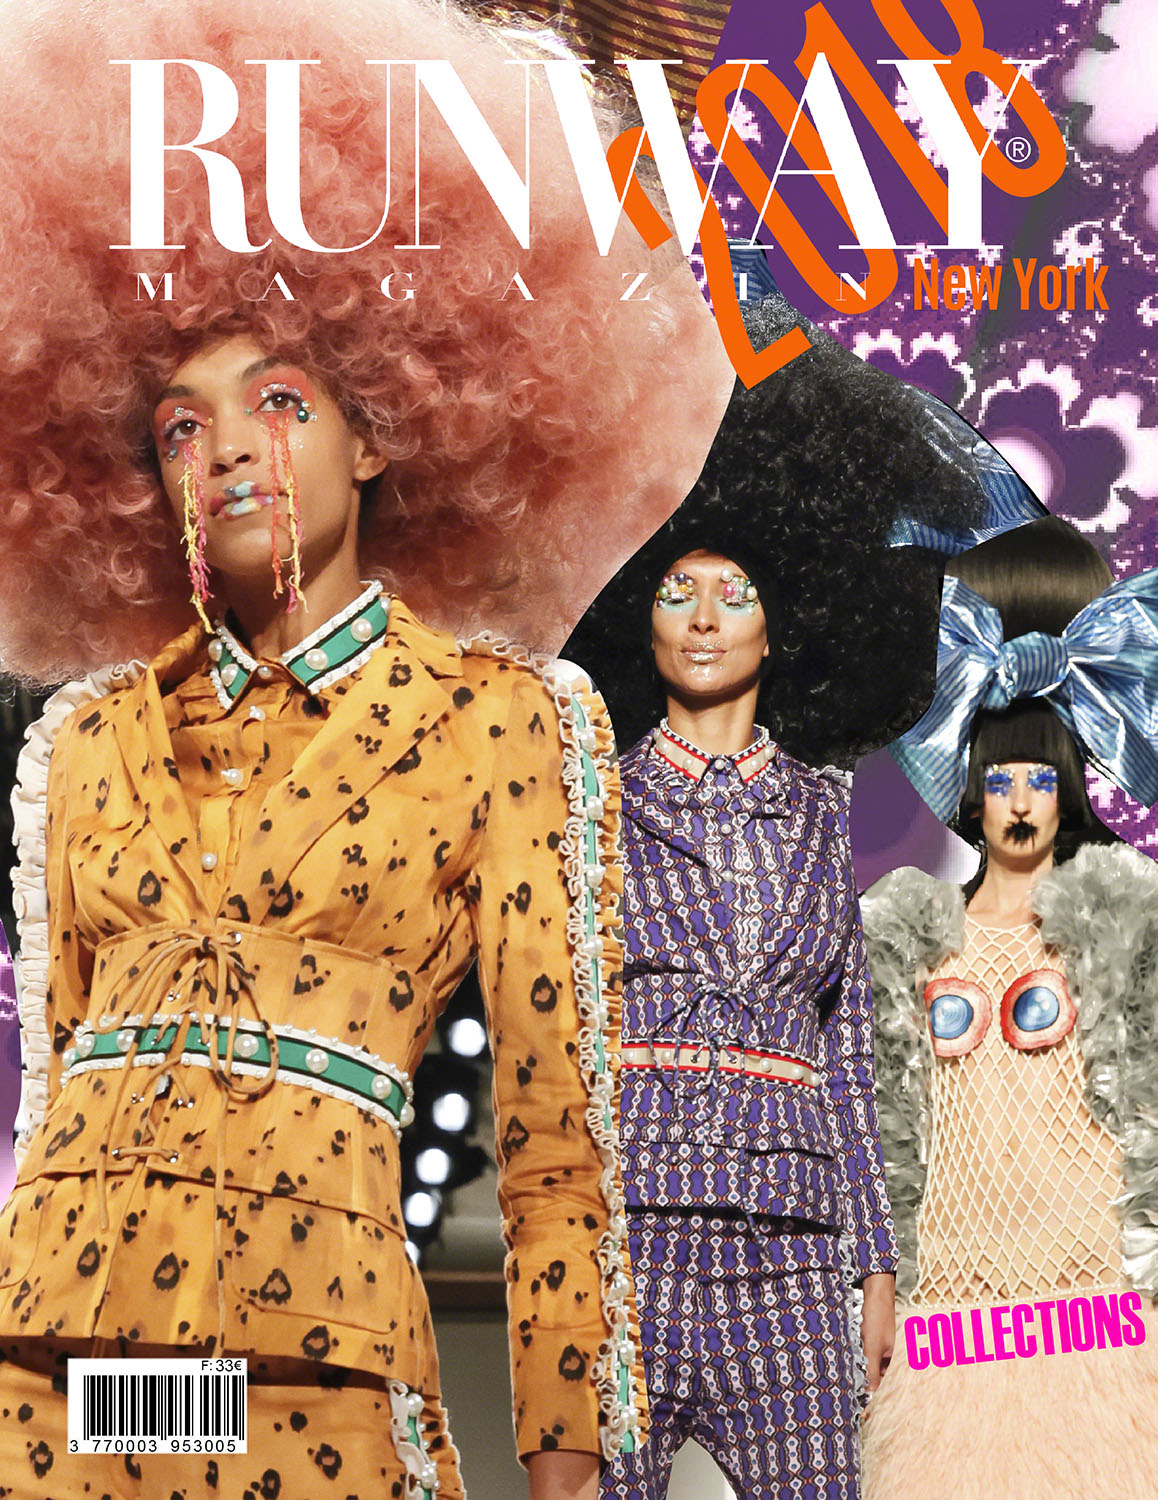 Runway Magazine 2018 New York Collections